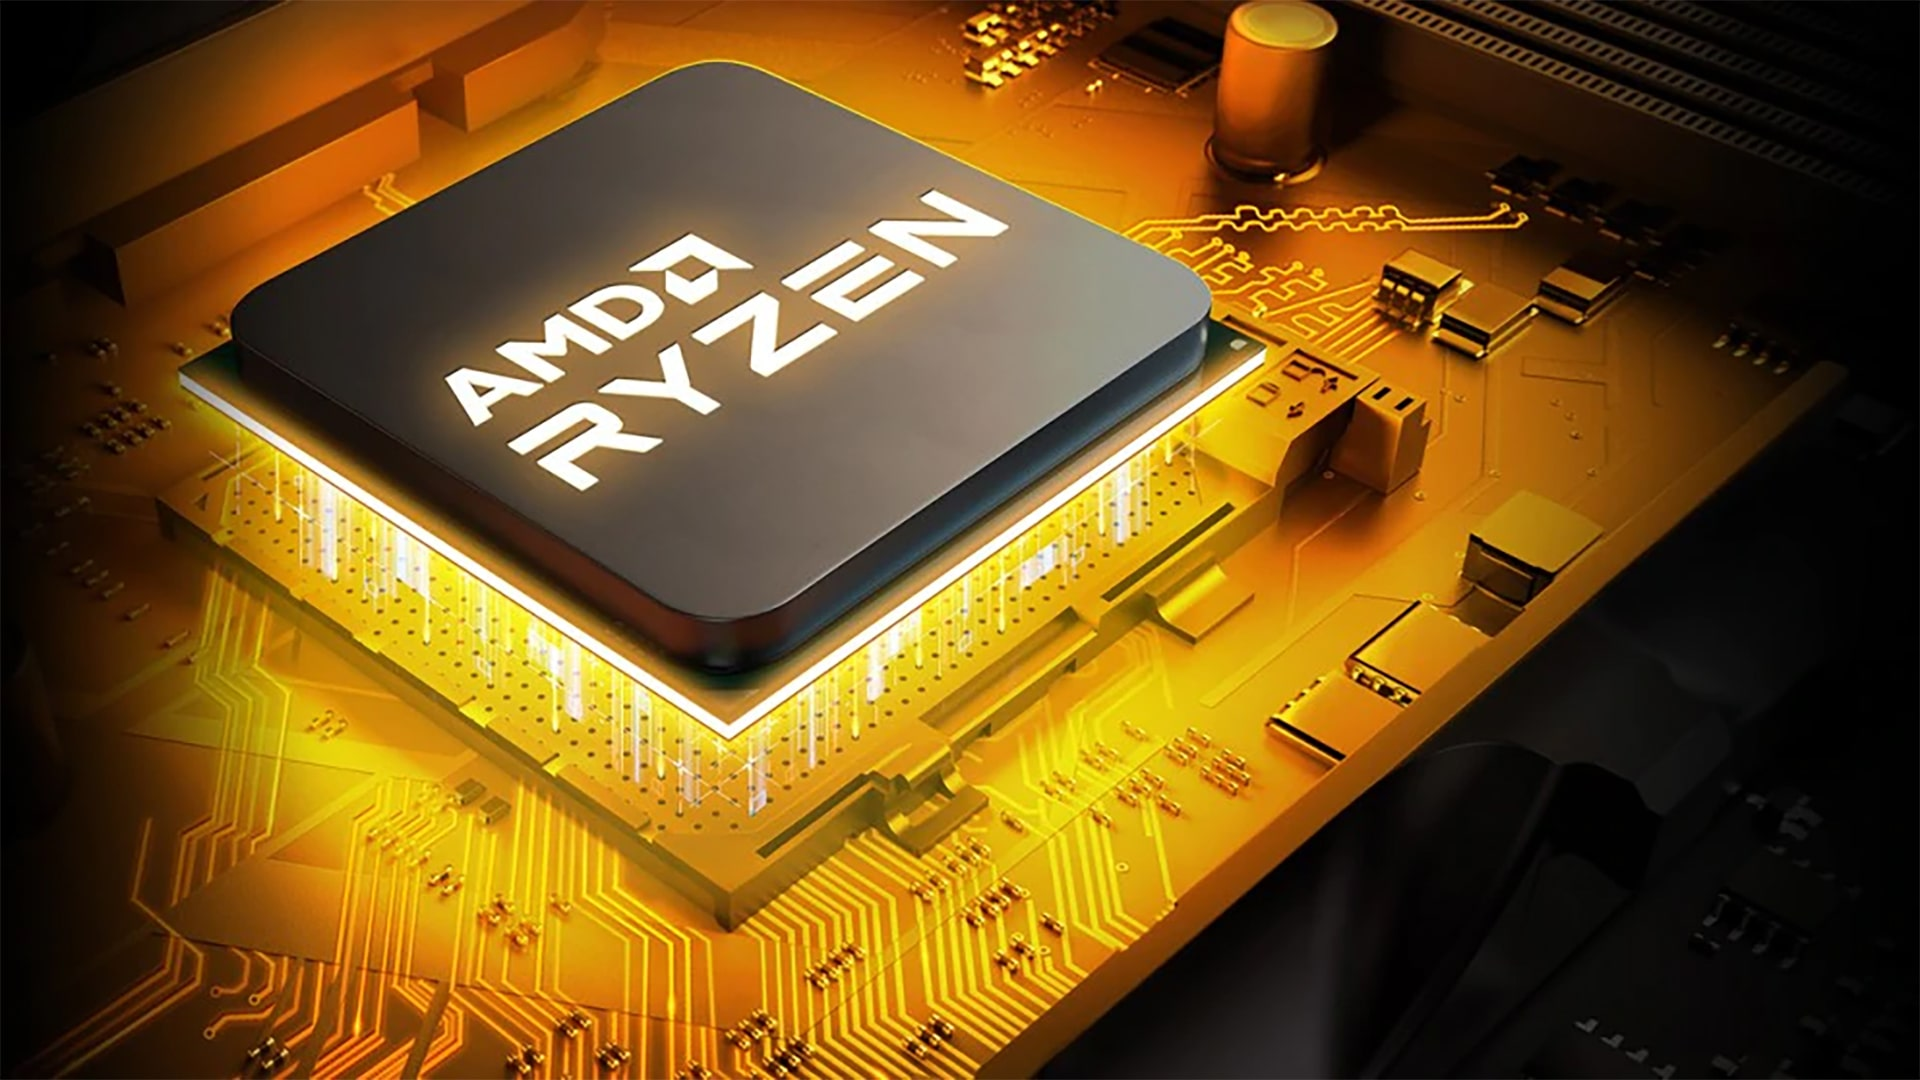 AMD A520 Motherboards